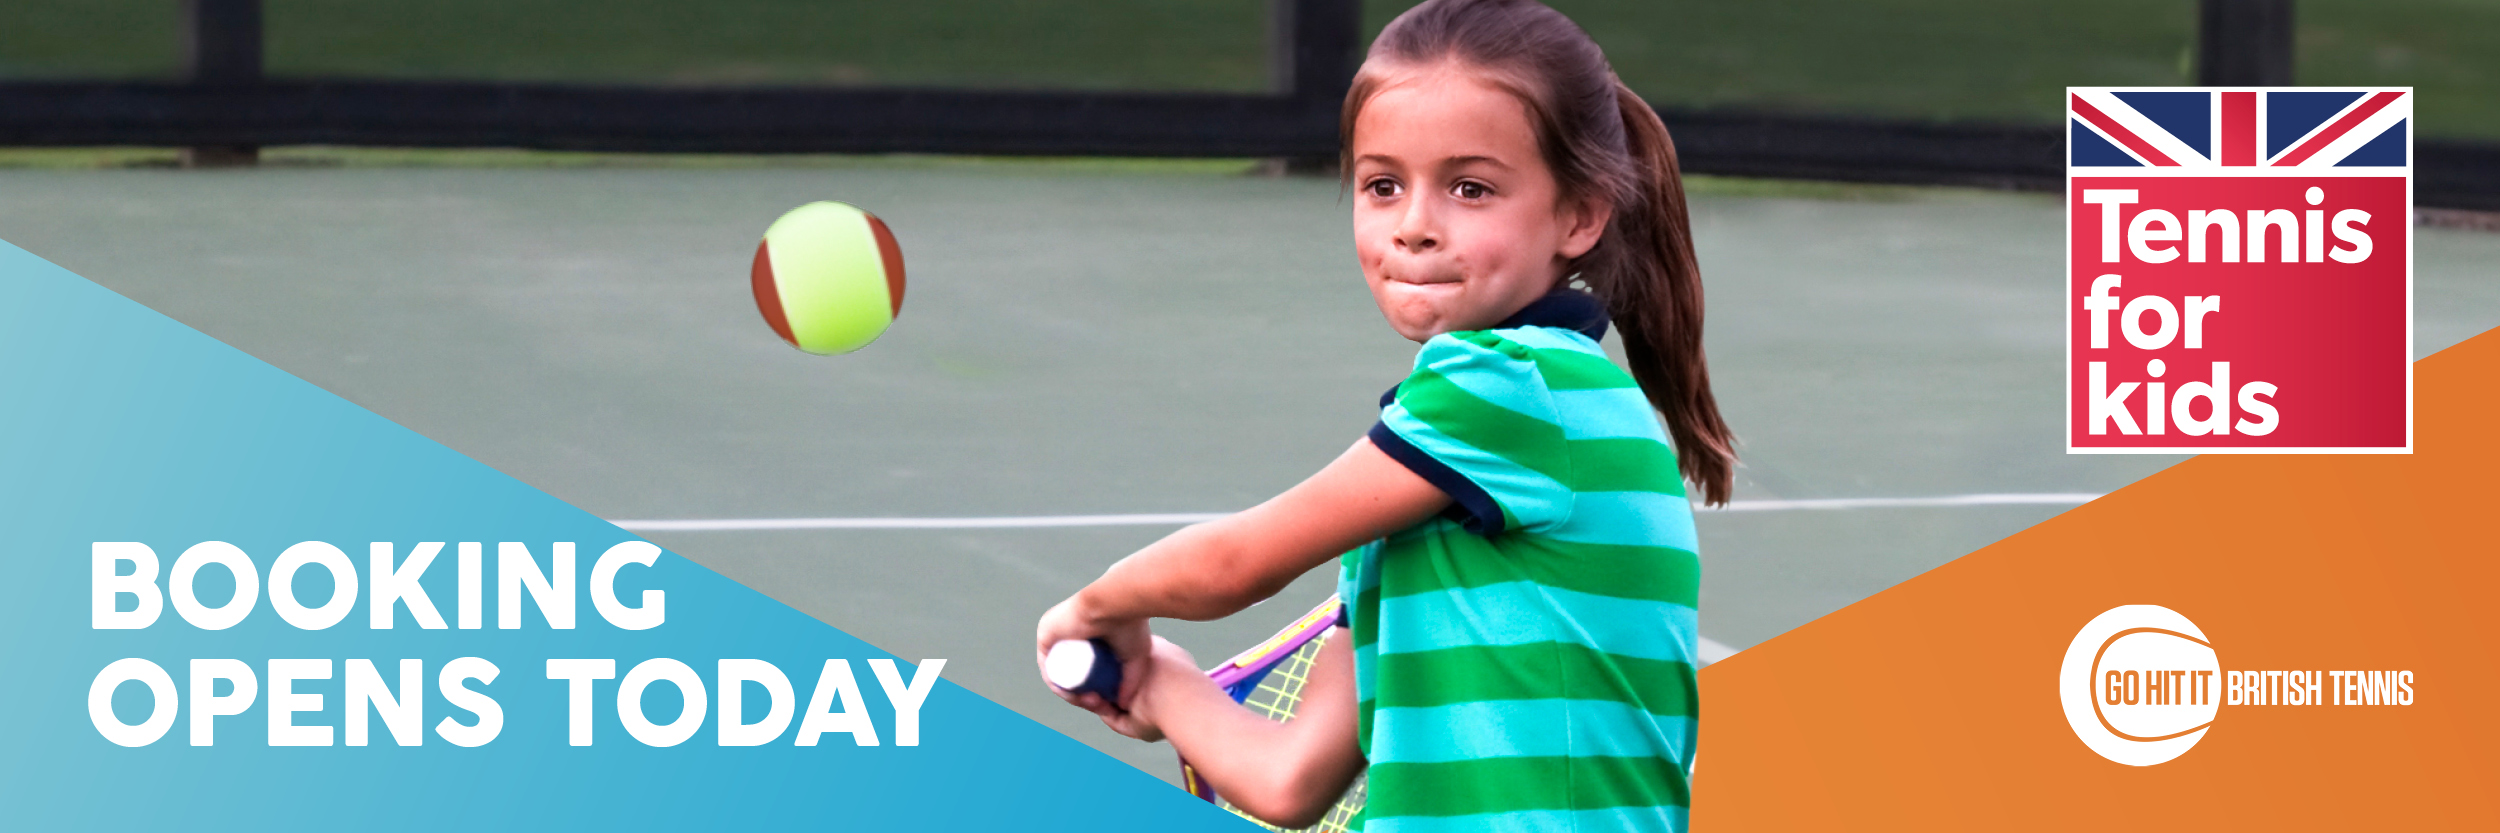 Tennis_For_Kids_Banner_Booking_Opens_Today_600x200.jpg